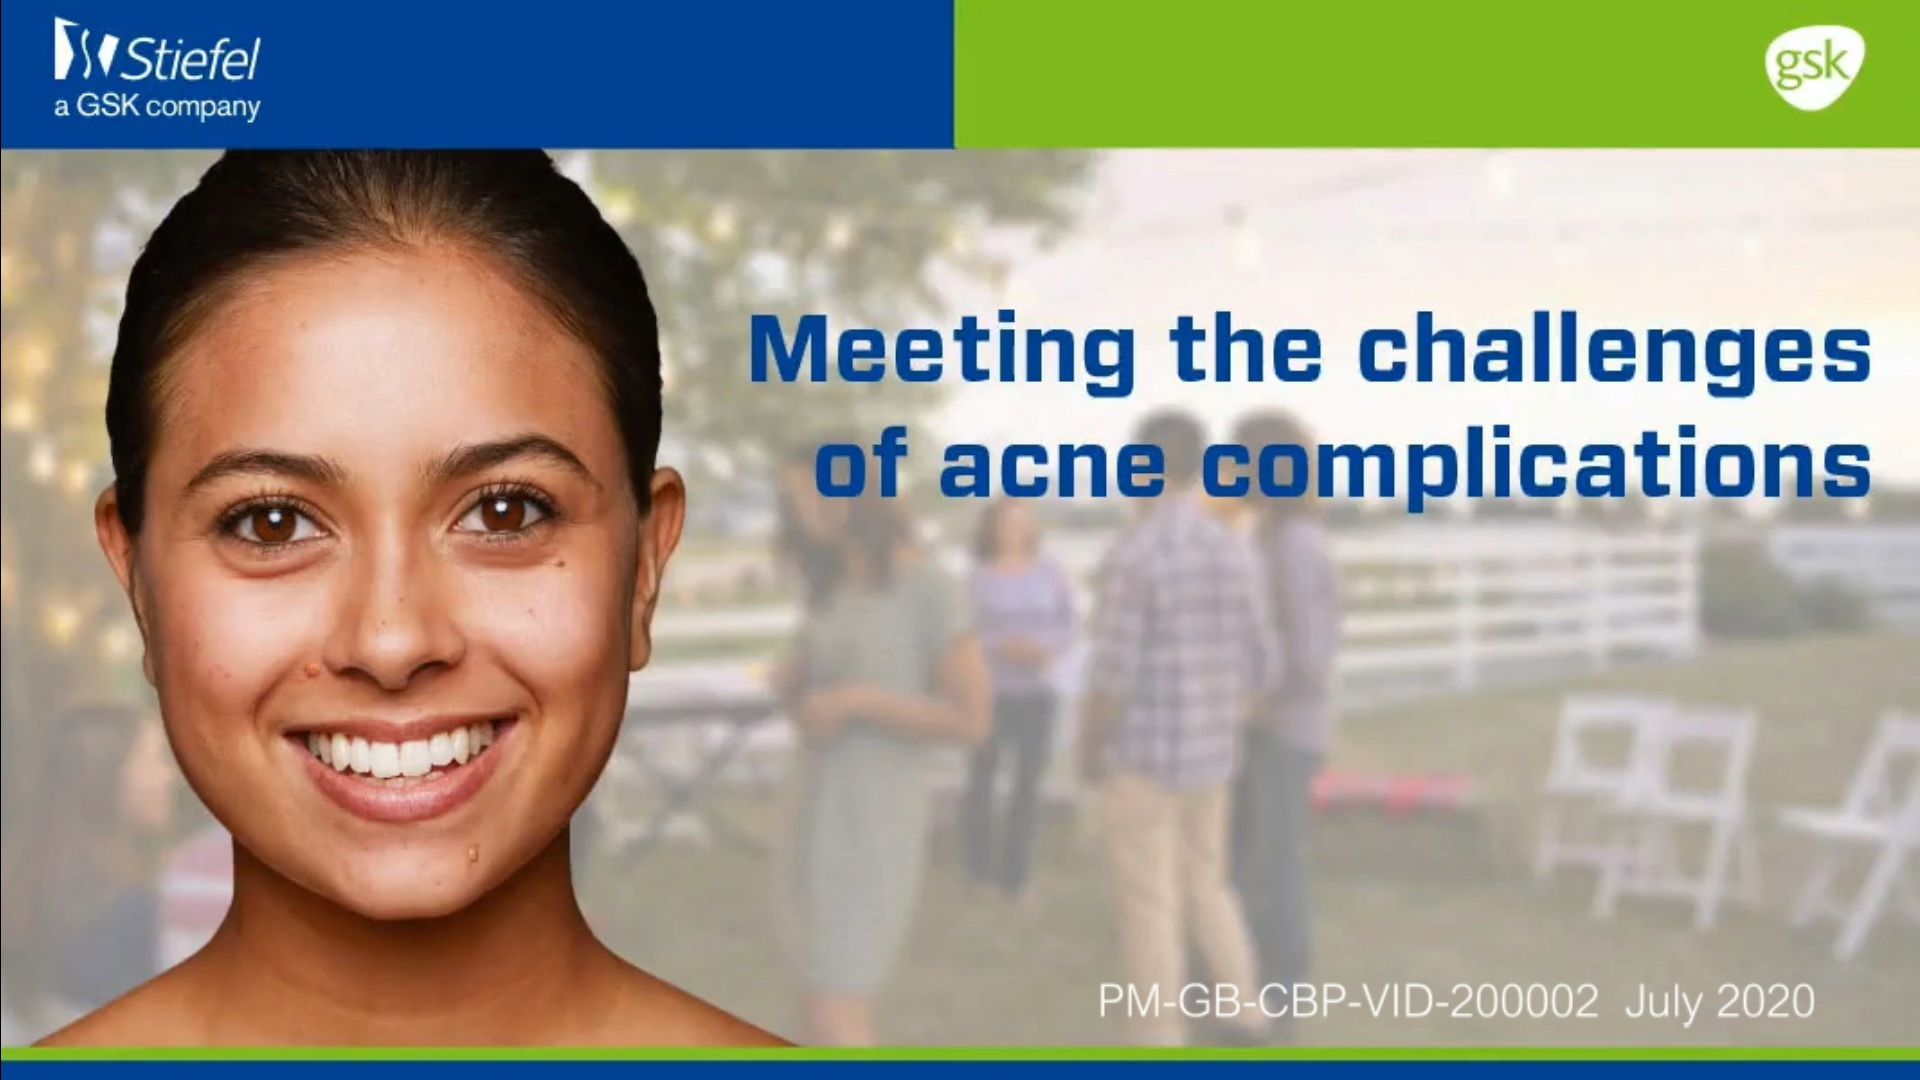 Meeting the challenges of acne complications